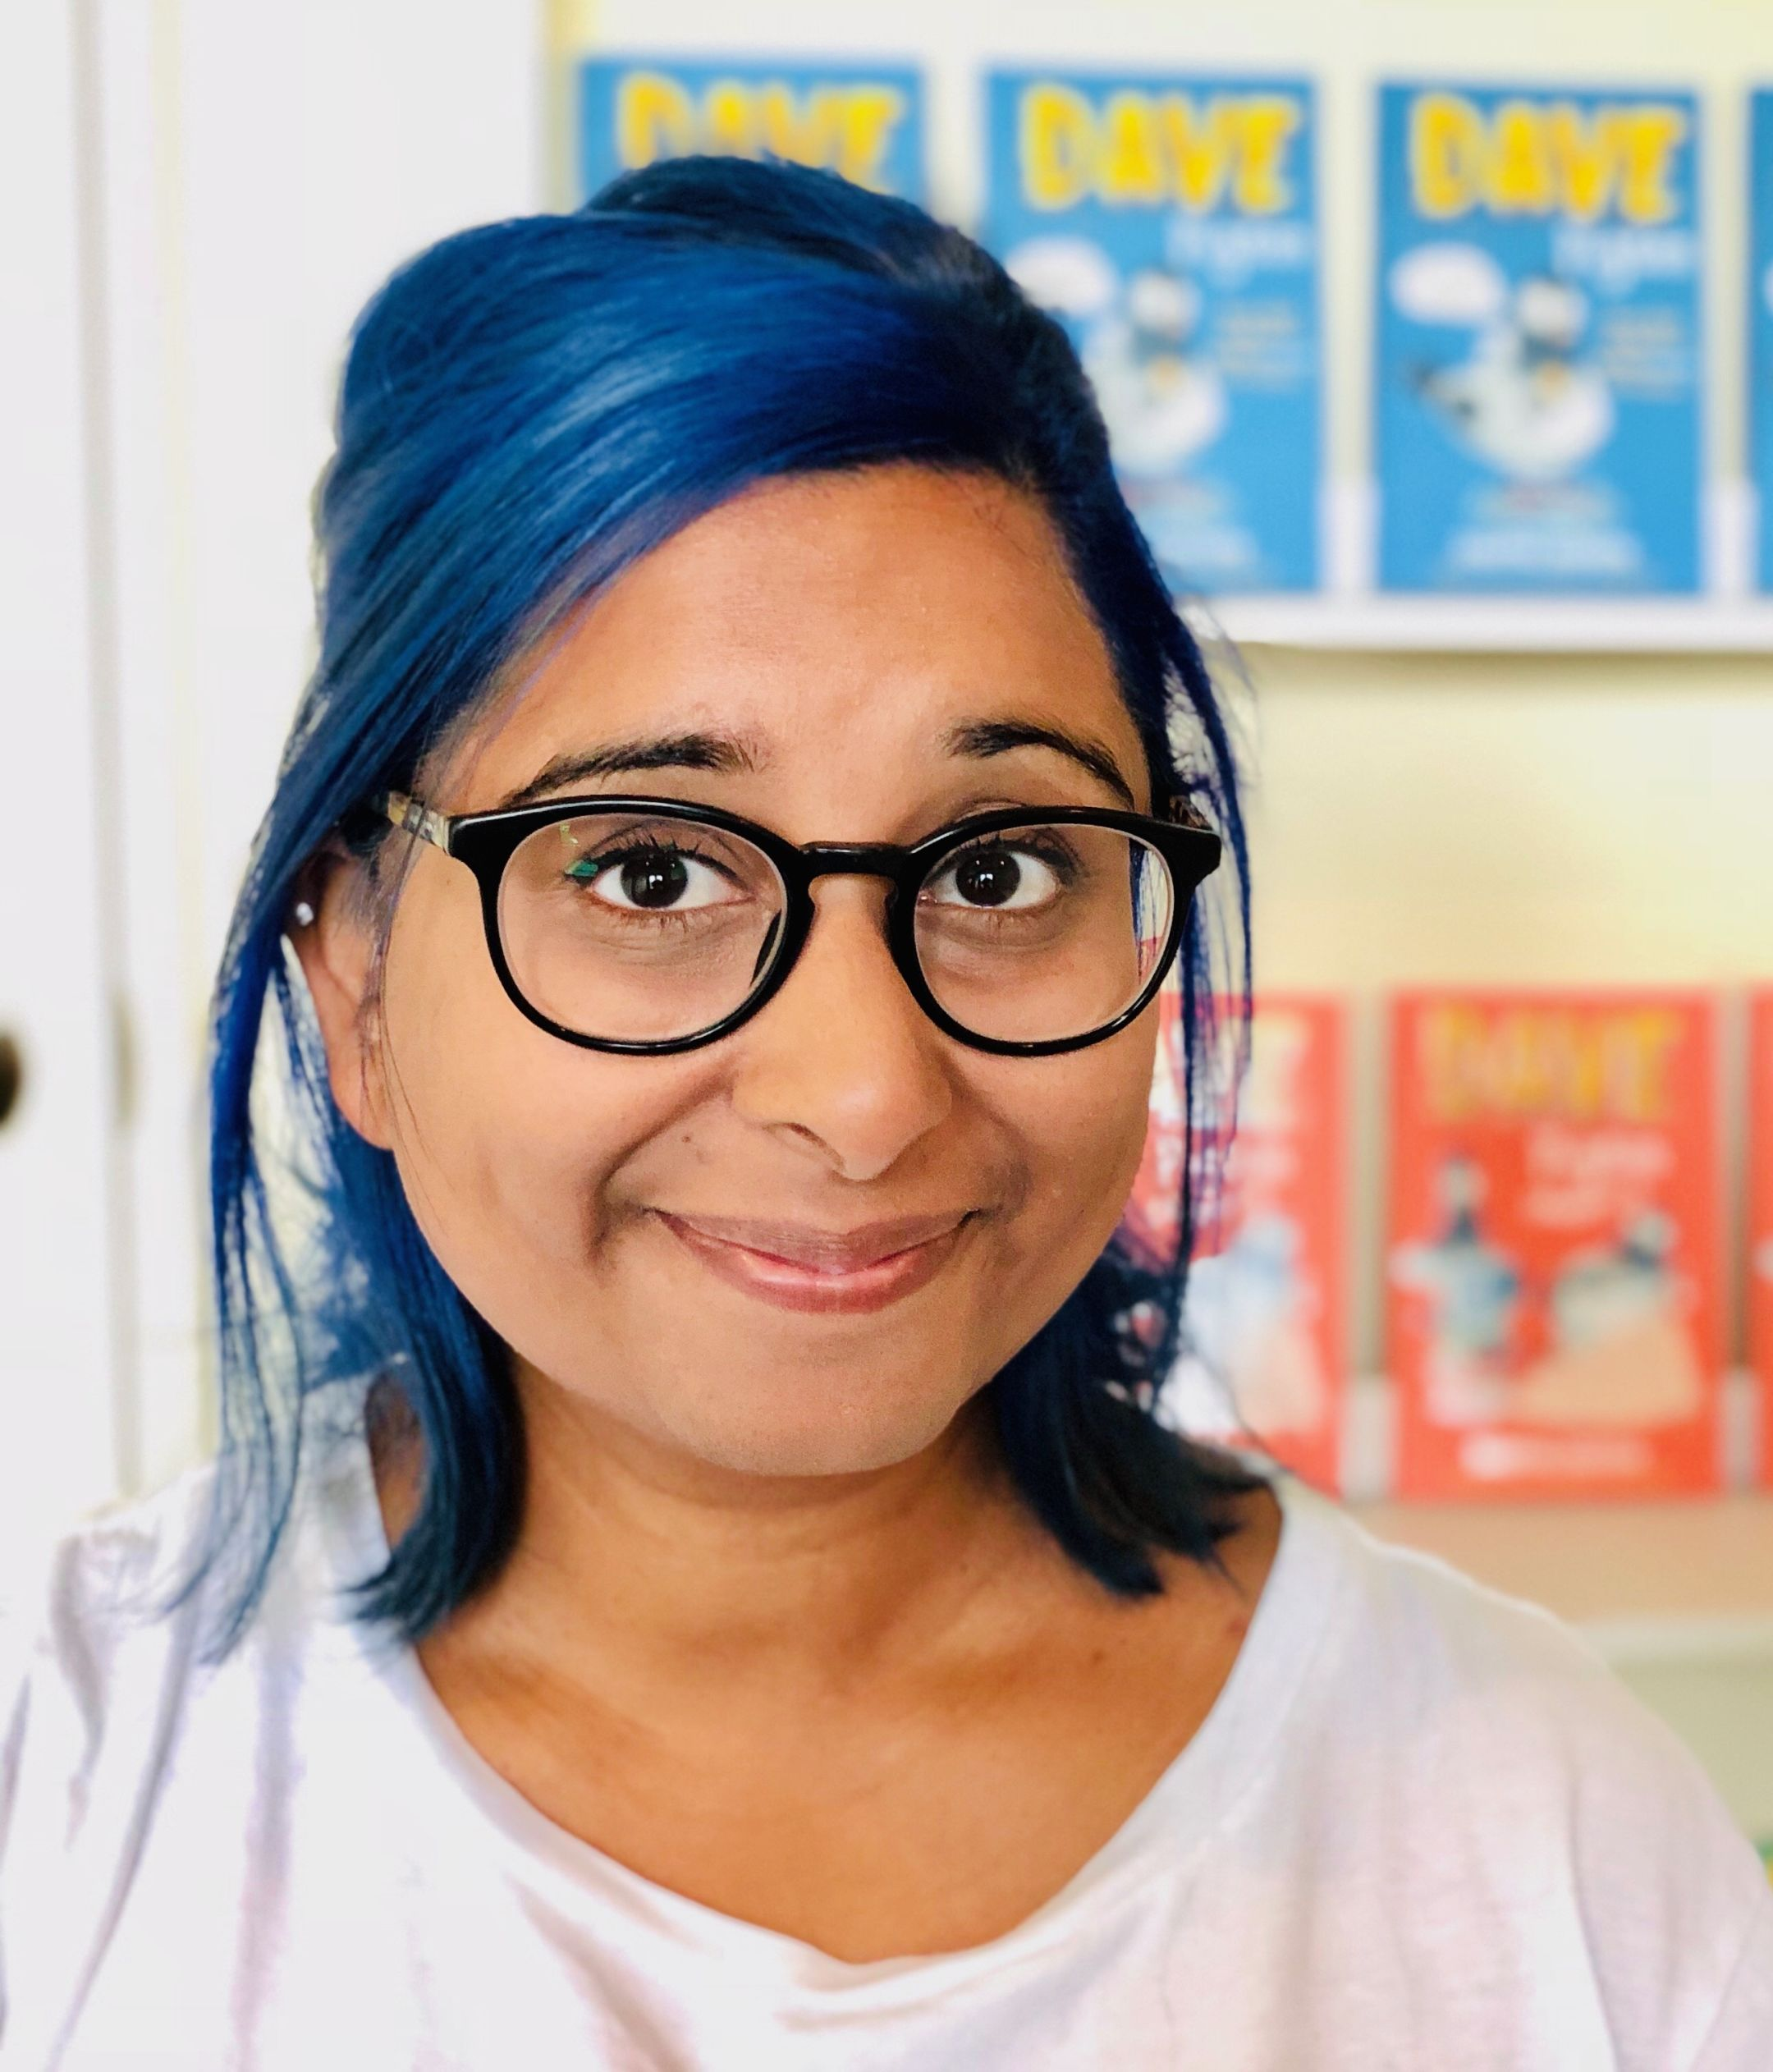 An image of author of the week Swapna Haddow